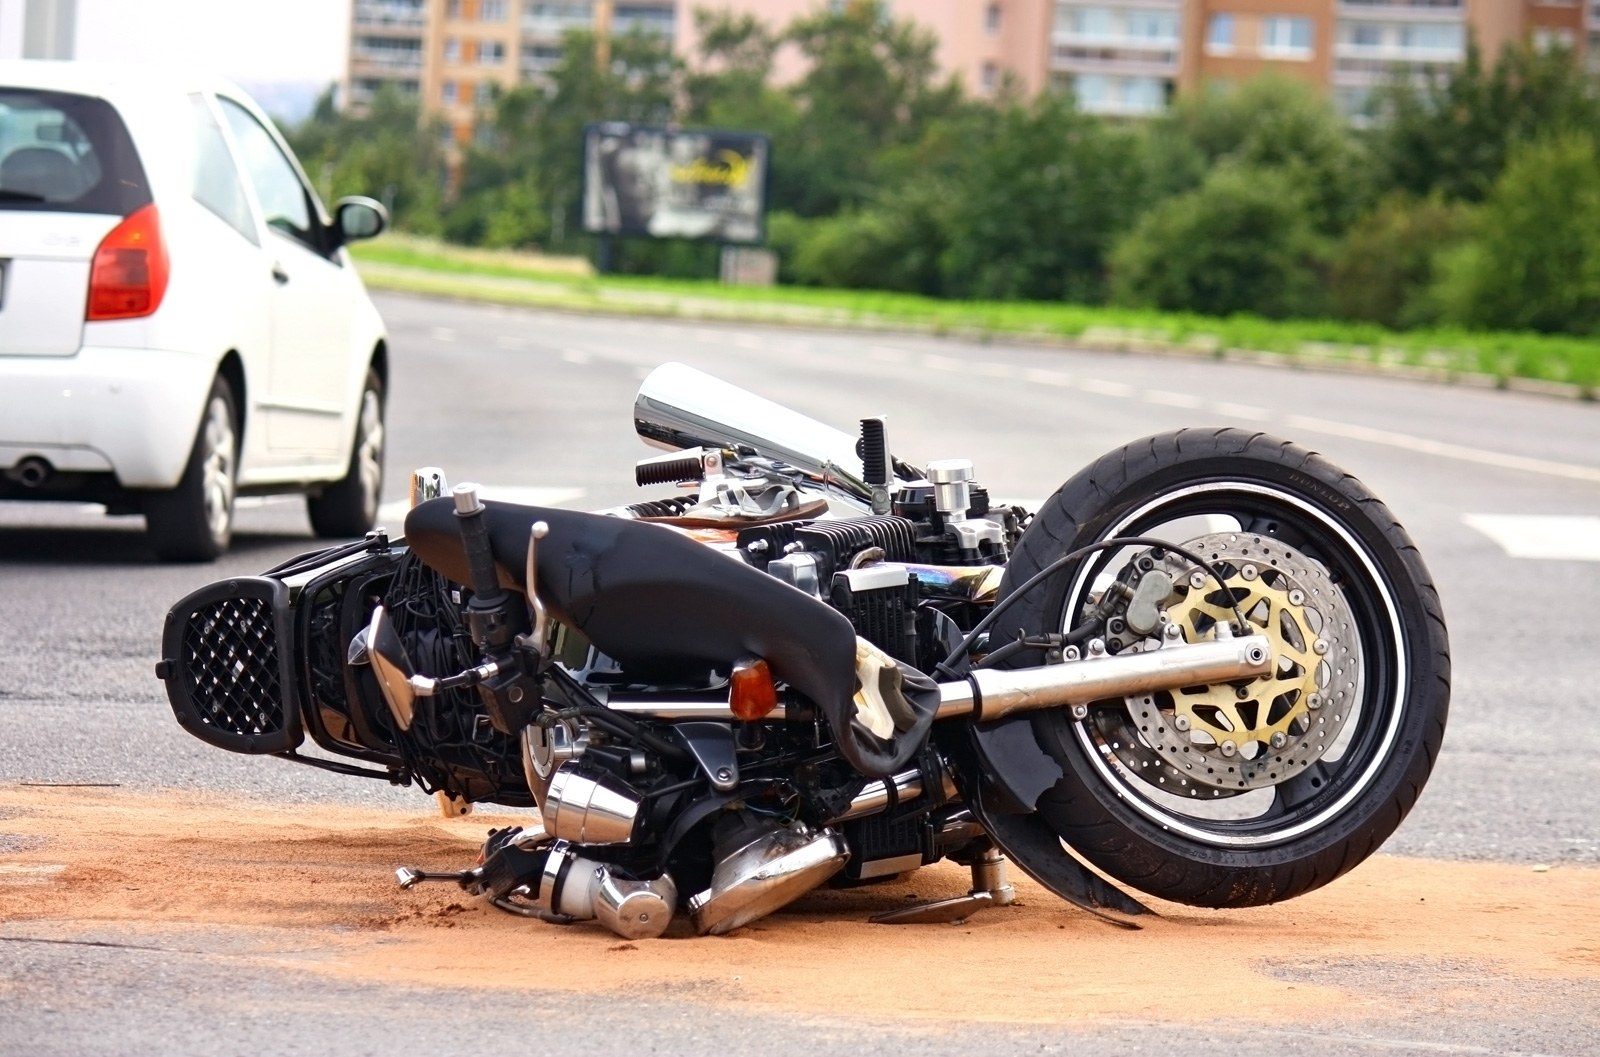 motorcycle-accident-lawyer-de